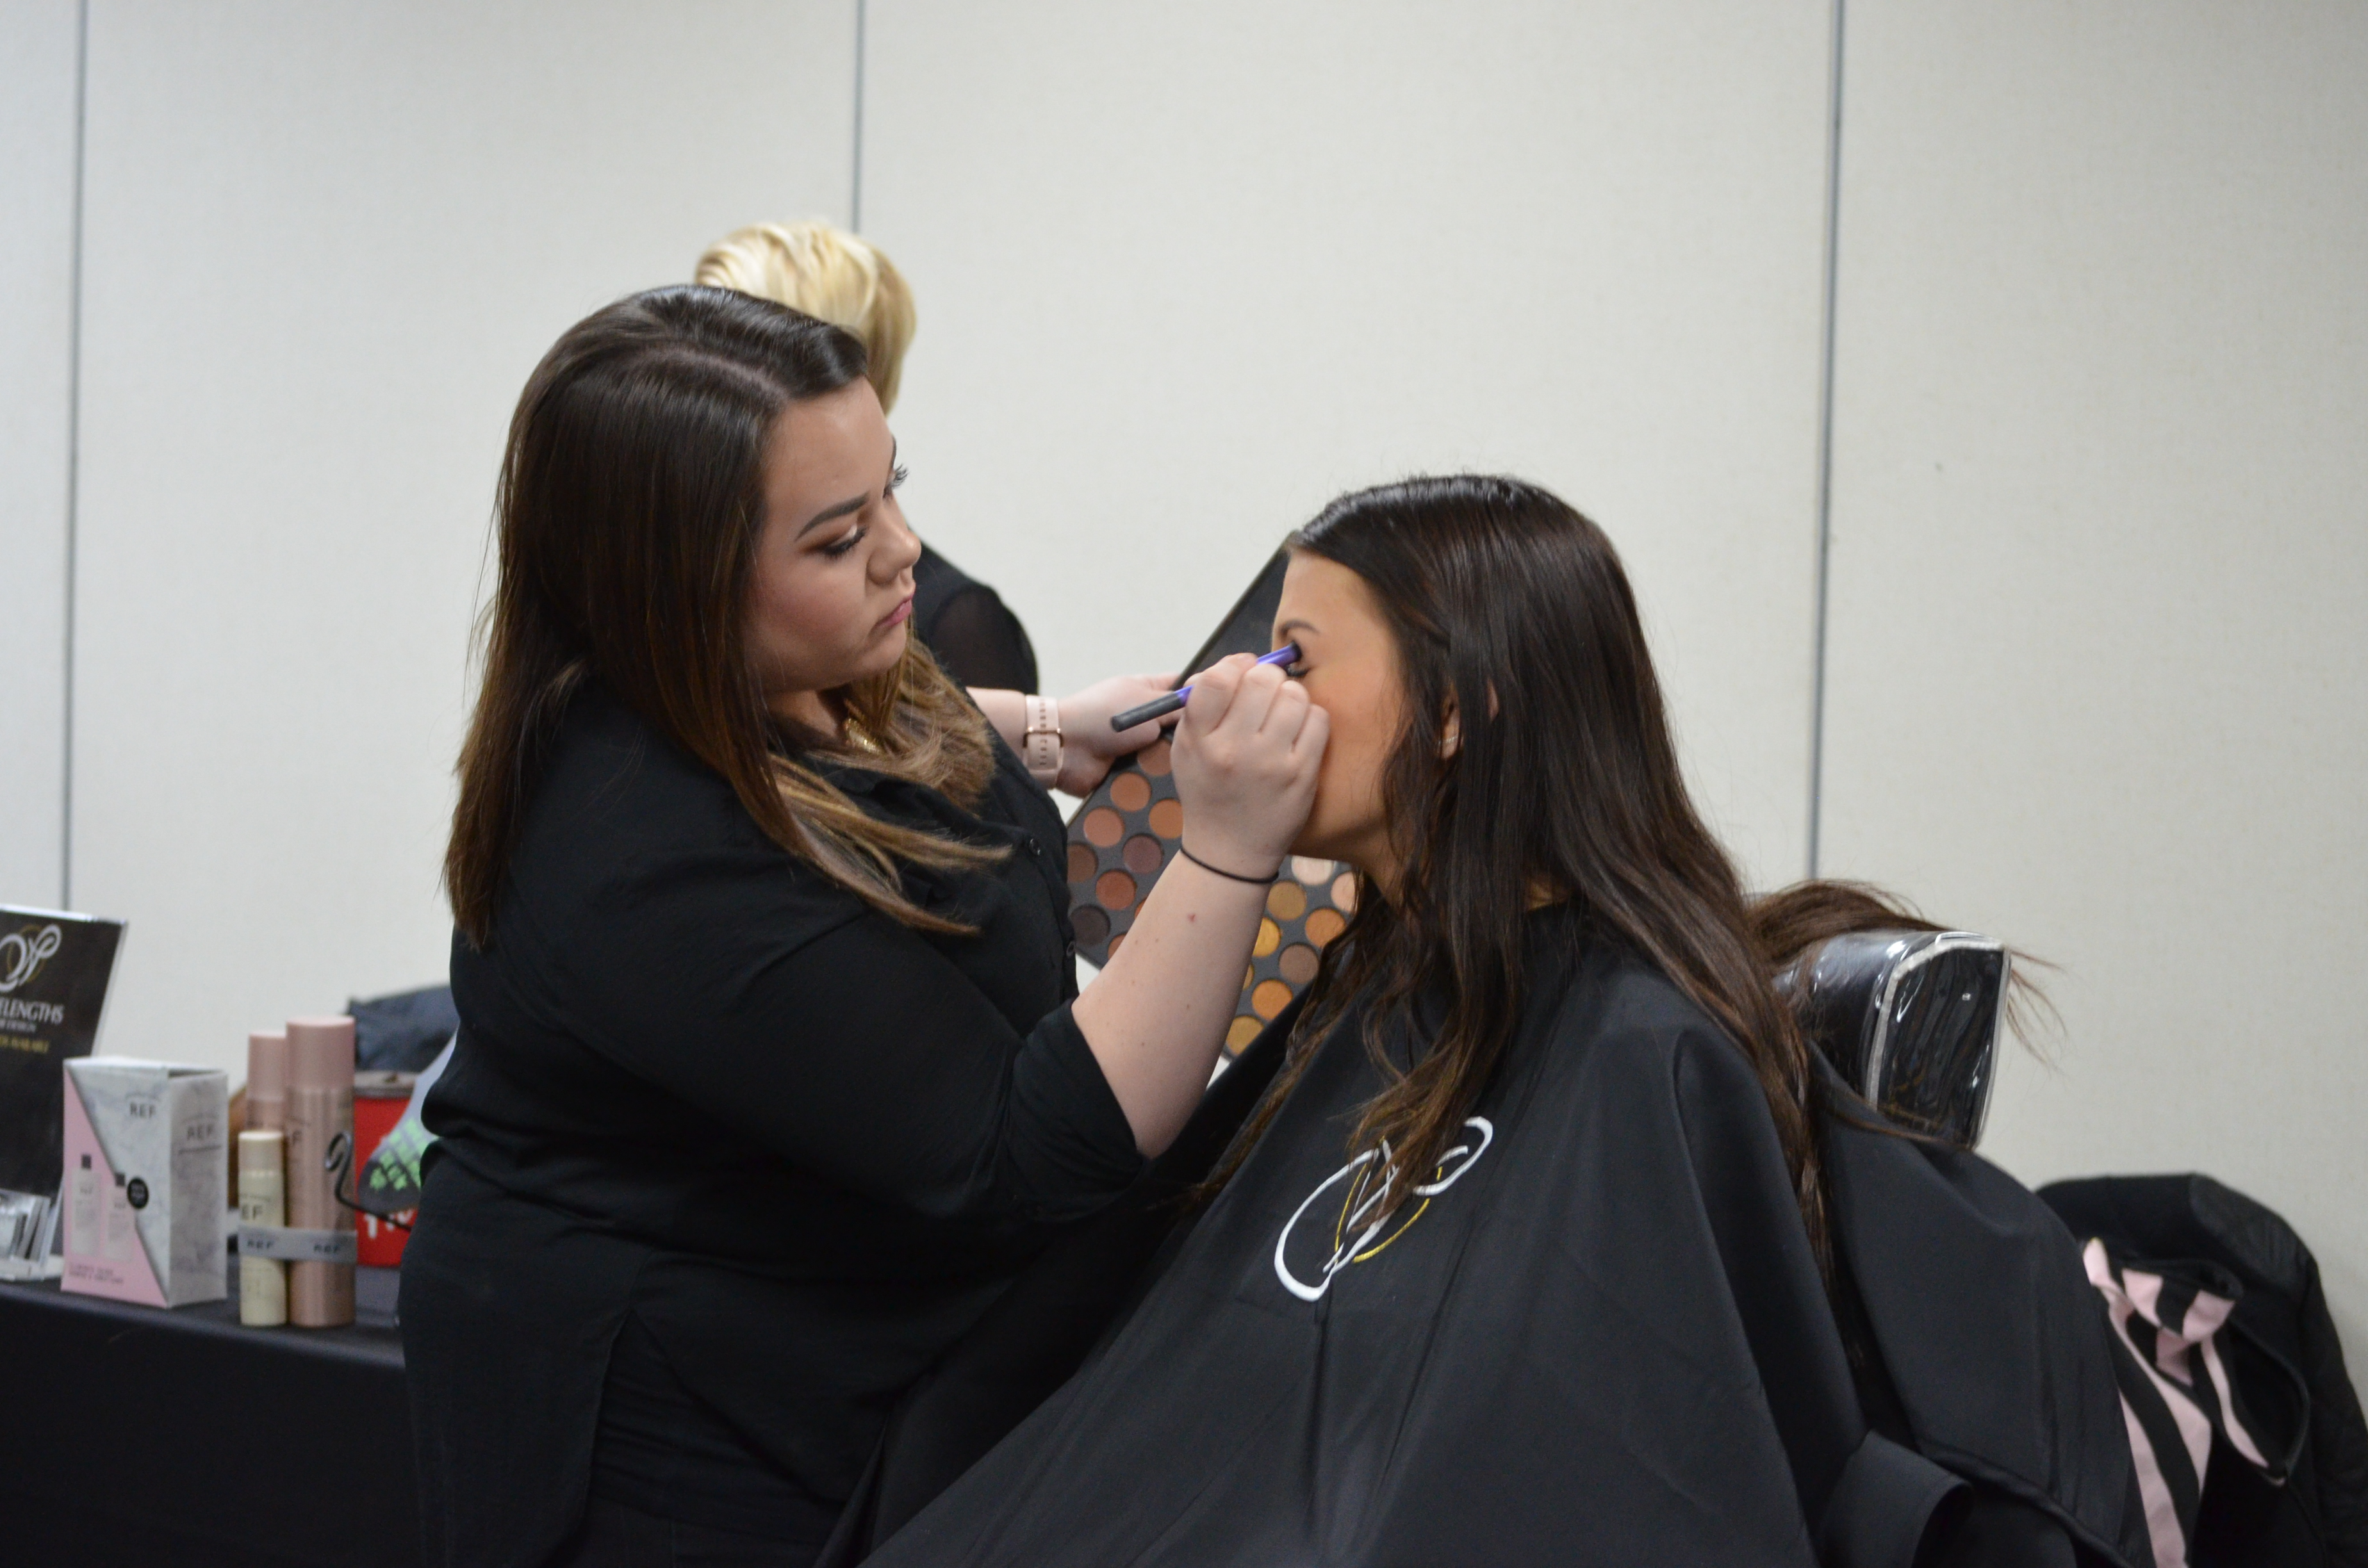 Jessica Hizer of Wavelengths Hair Design applies makeup to Keira Krantz, Kenmore East High School junior and first year cosmetology student at Kenton Career & Technical Center.